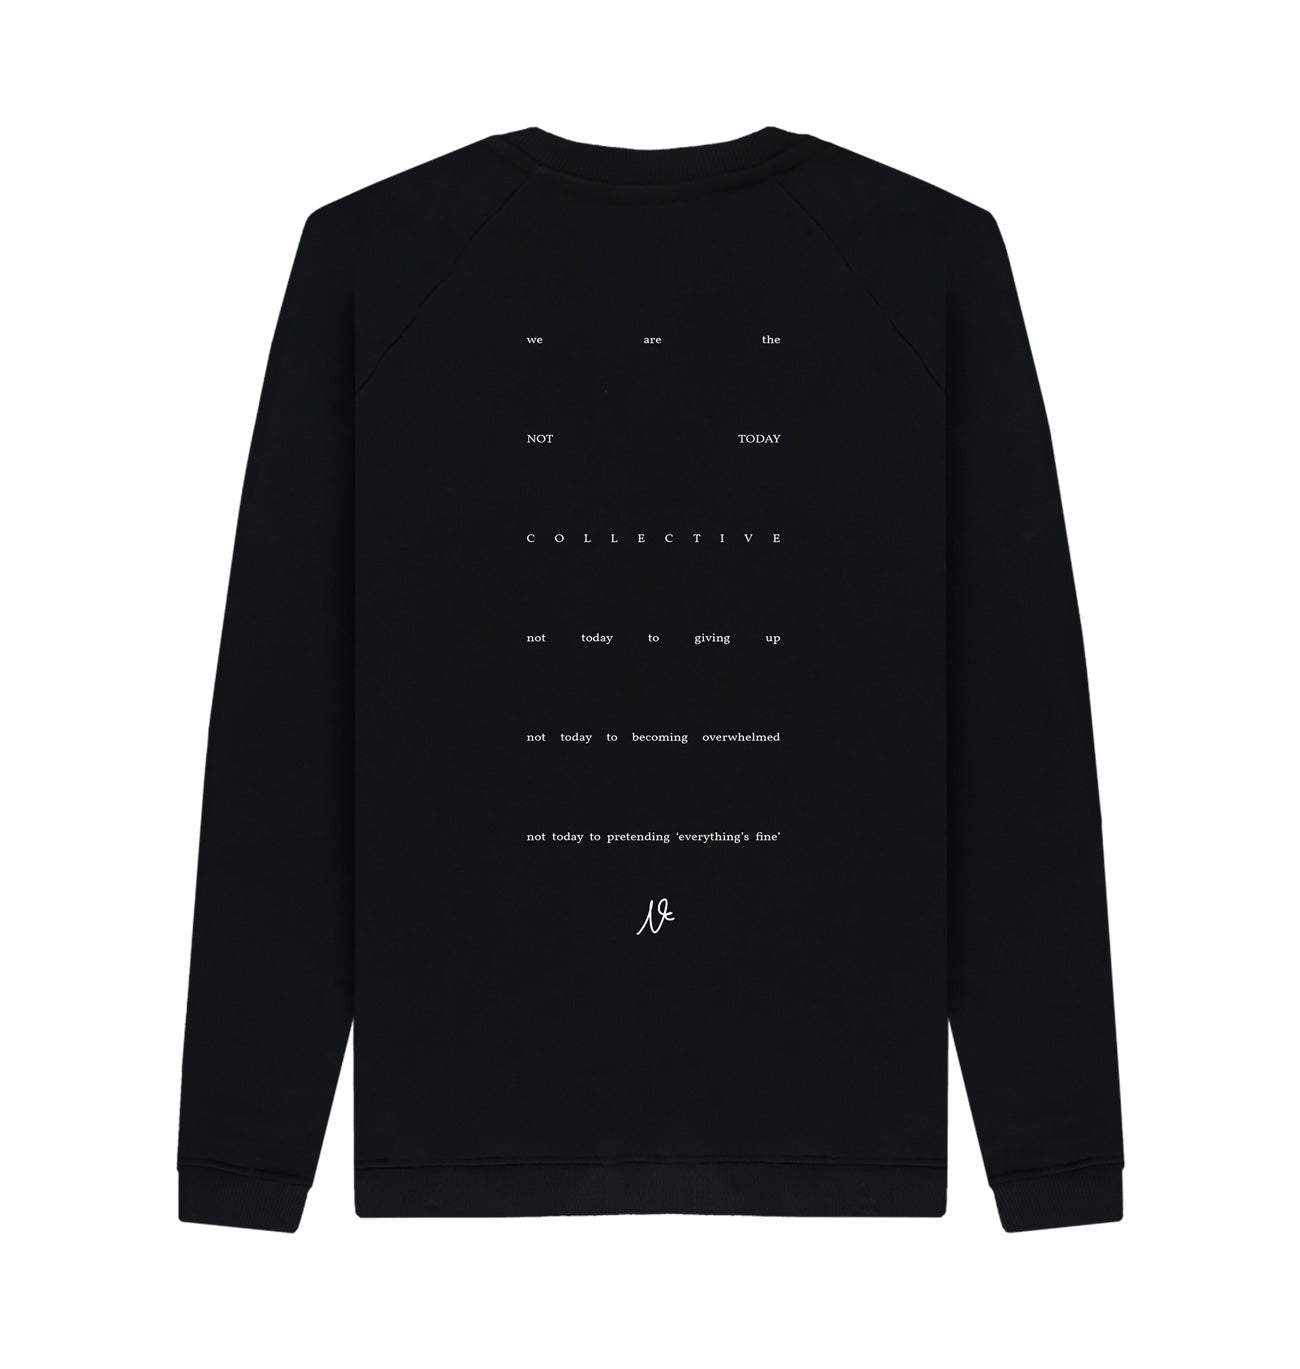 Standard Issue Sweatshirt - Black (Unisex)